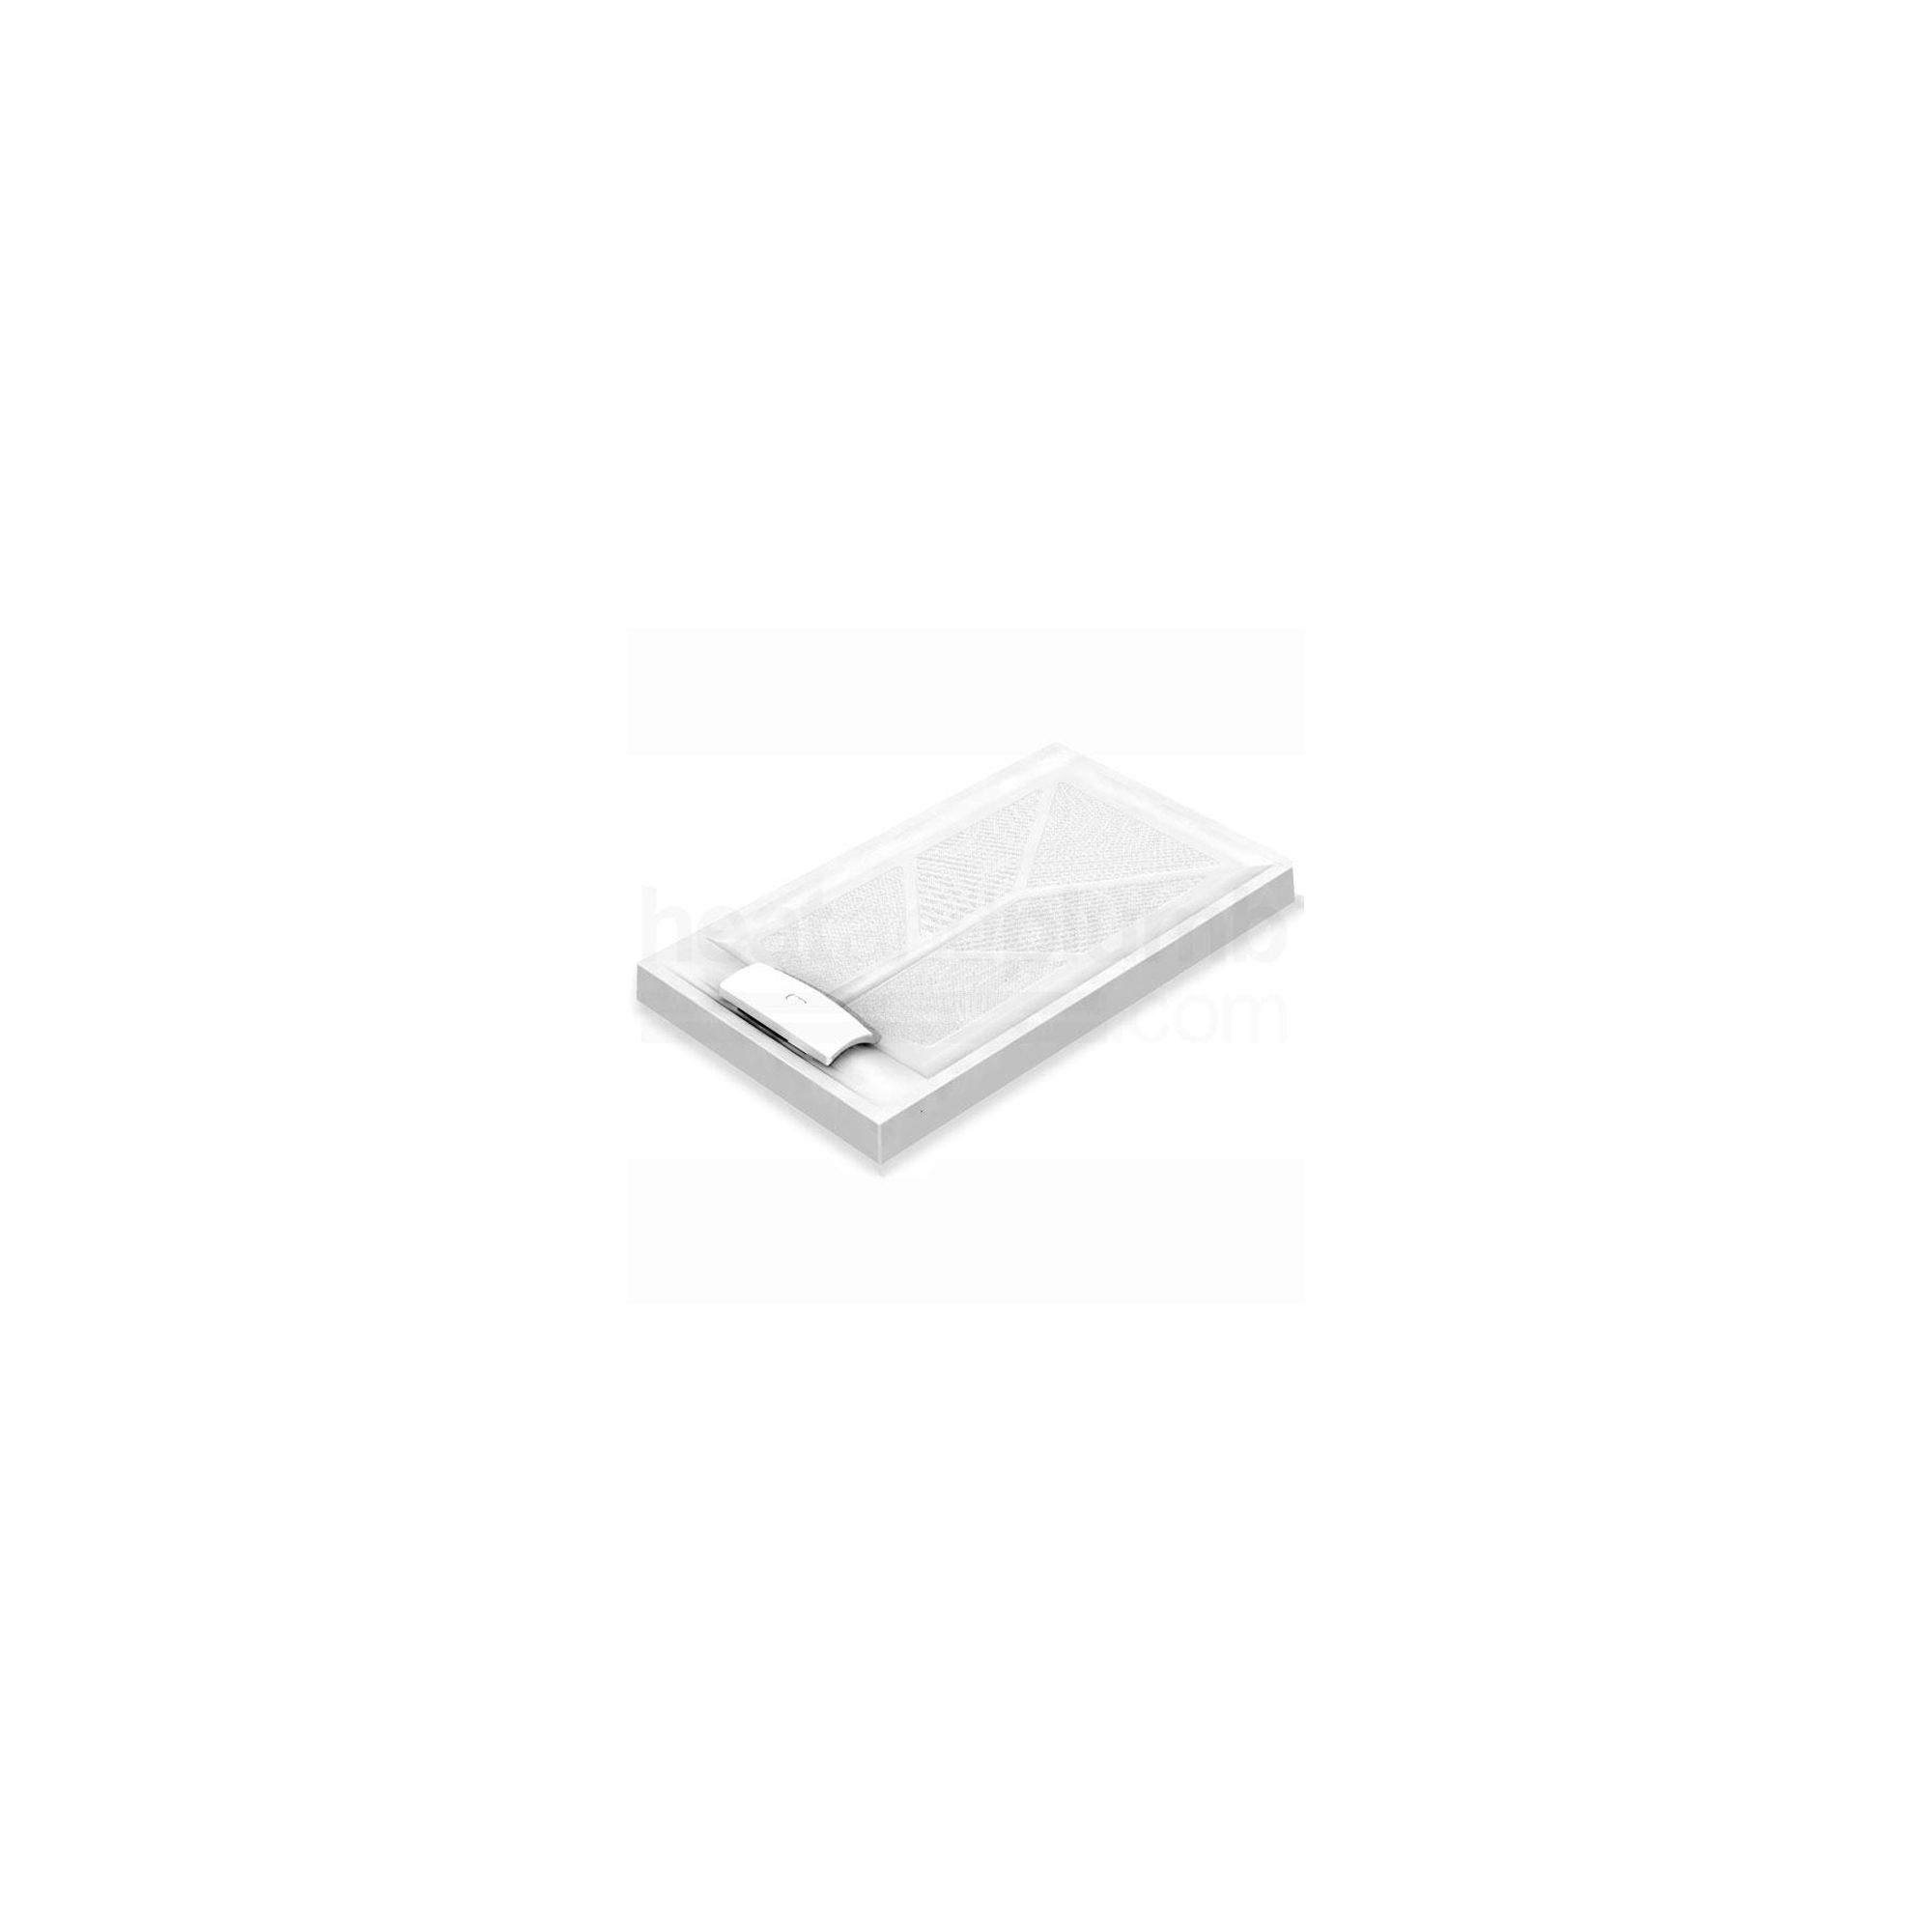 AKW Sulby Rectangular Shower Tray 1420mm x 700mm at Tesco Direct